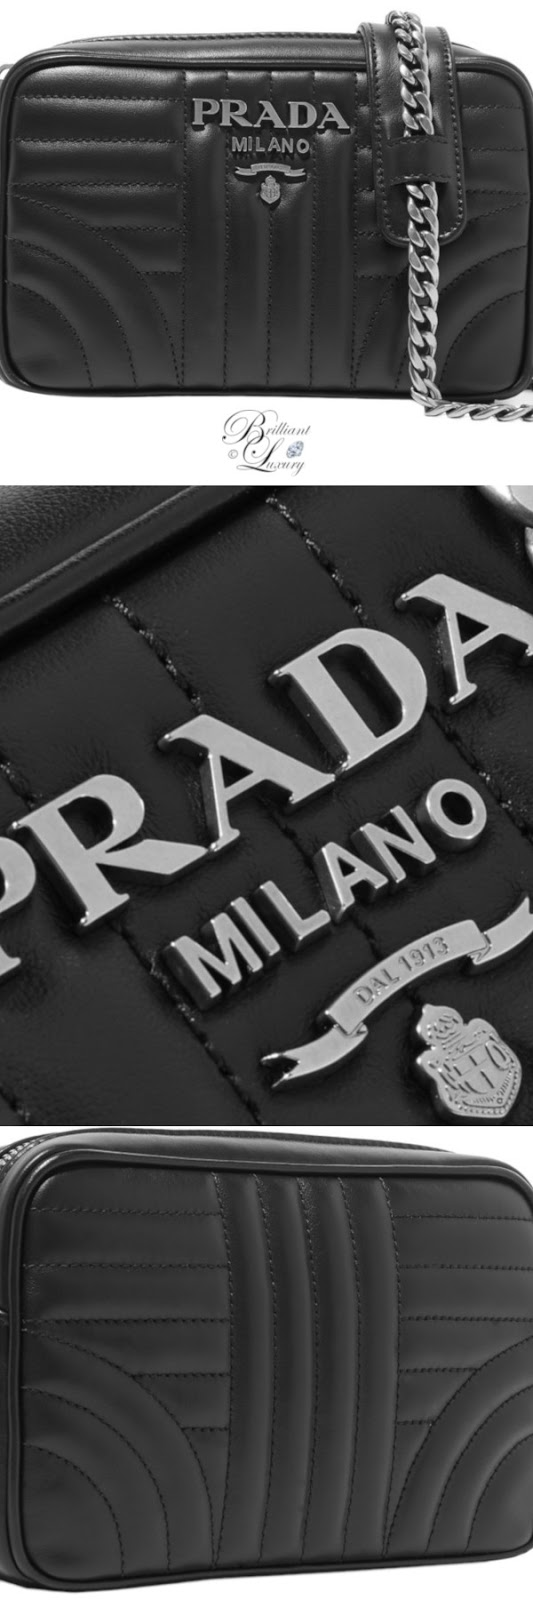 Brilliant Luxury ♦ Prada quilted leather camera bag